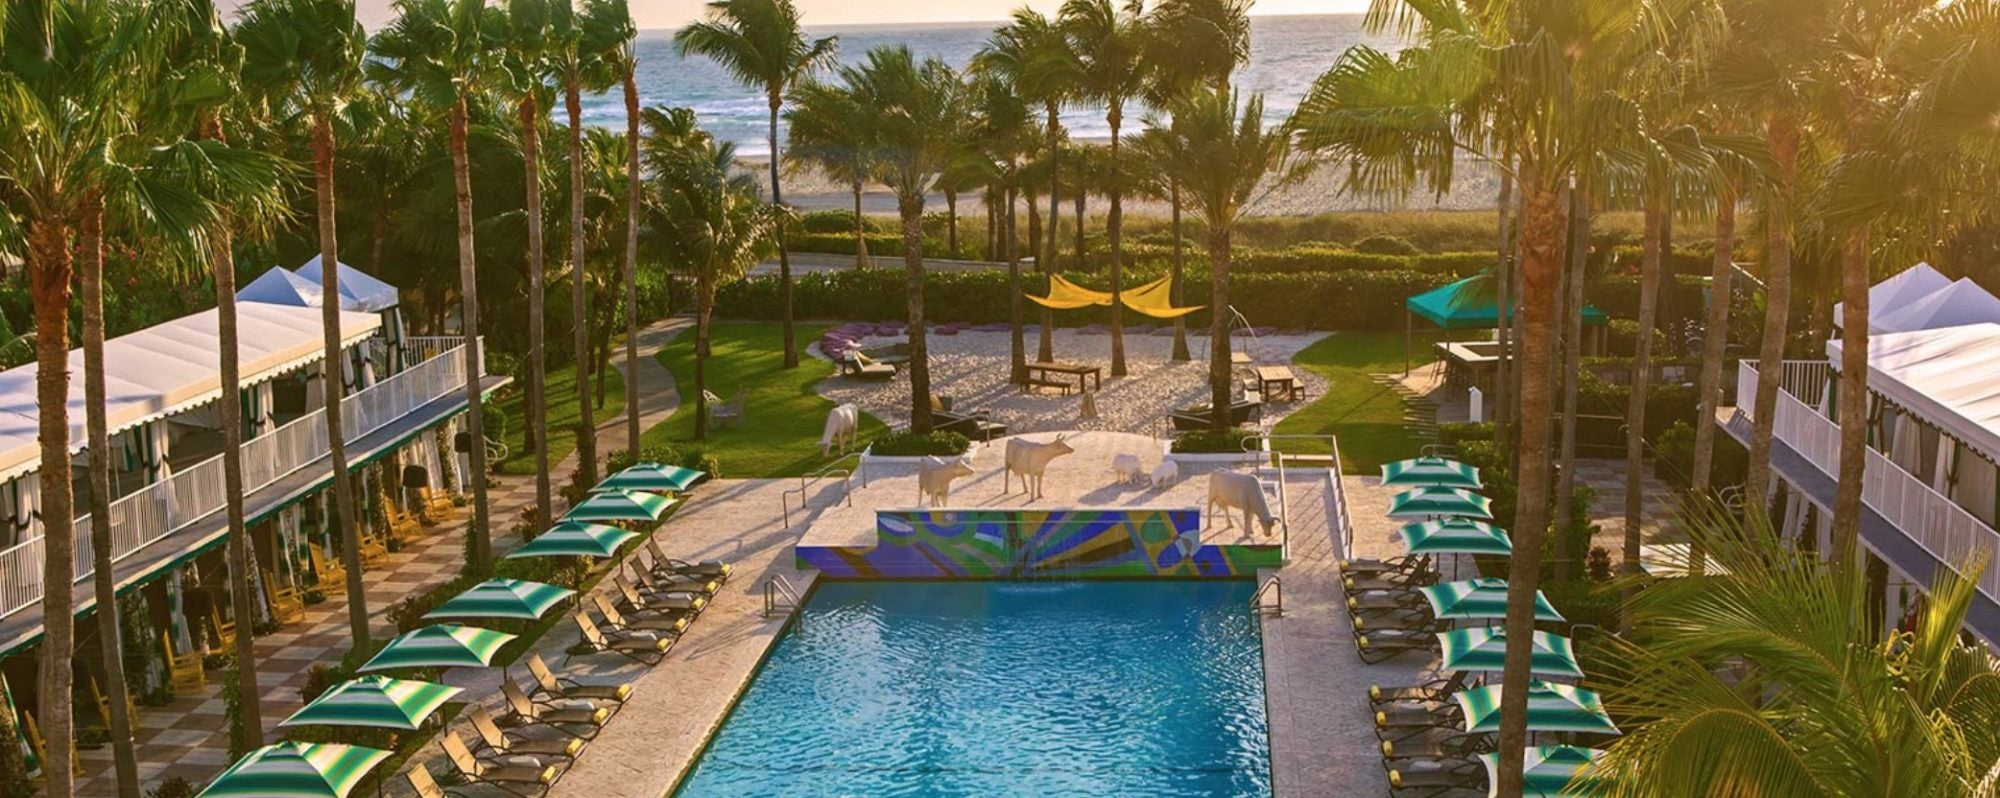 My Experience at the Spectacular Kimpton Surfcomber Hotel in South Beach! Stay for Free Using IHG or Chase Ultimate Rewards Points!